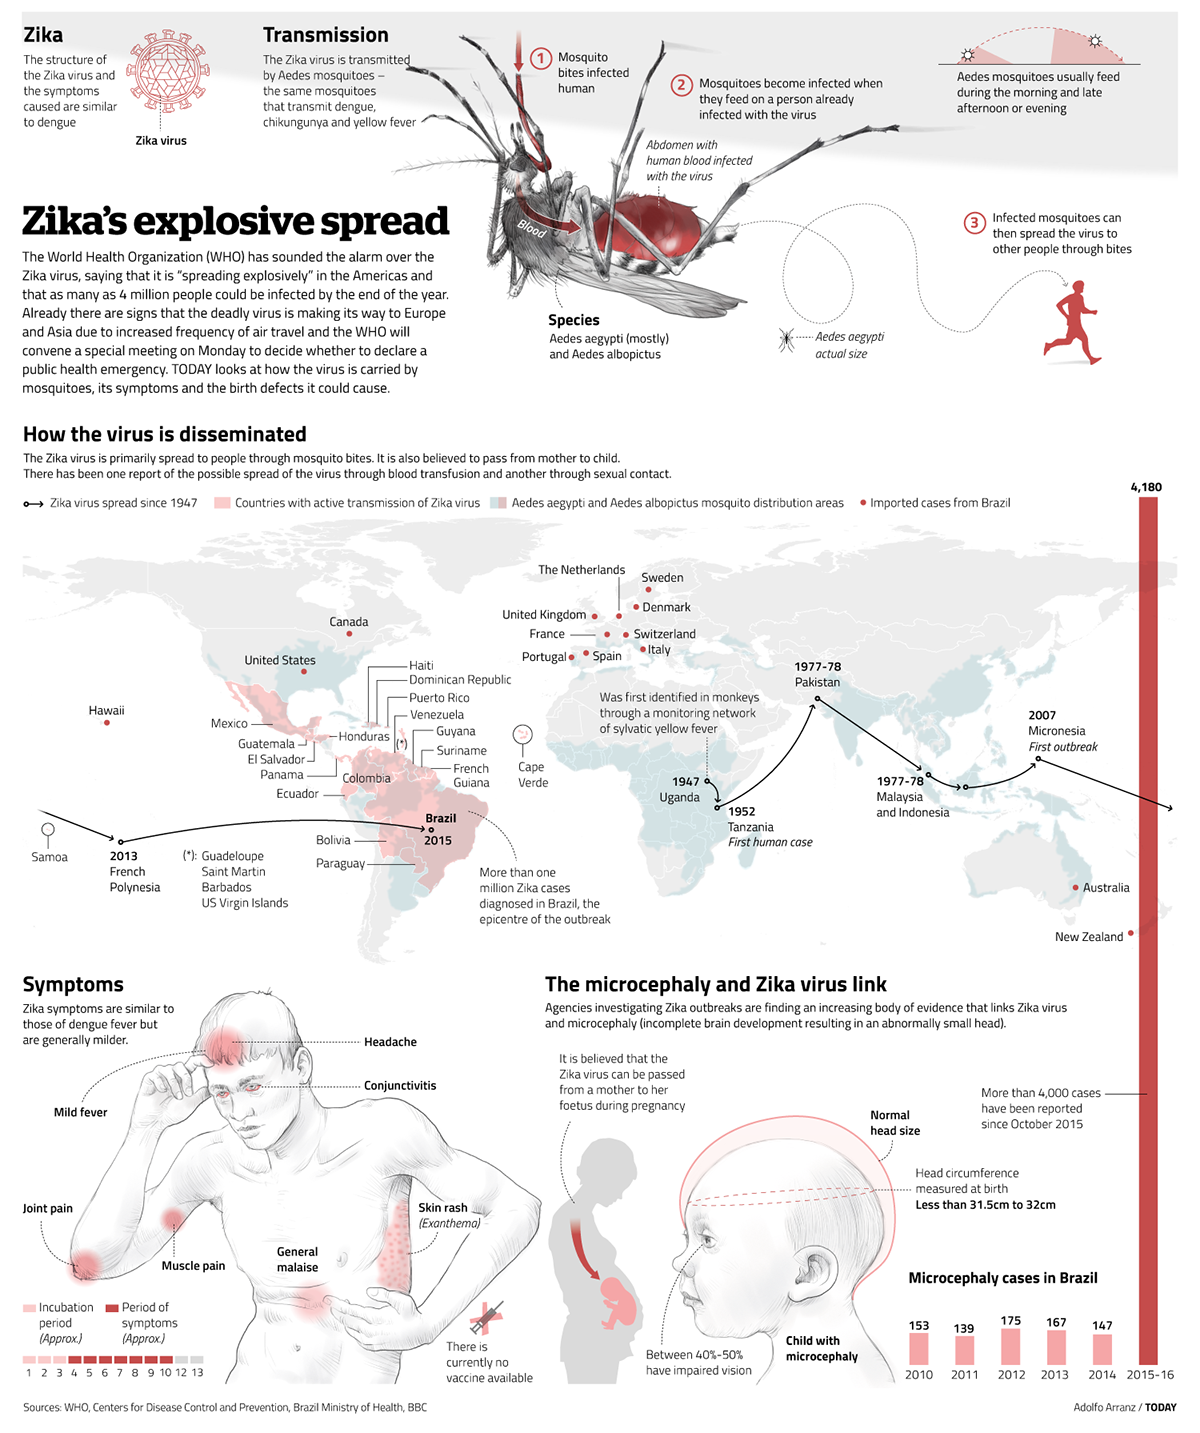 Infographic page about Zika's virus for Today newspaper